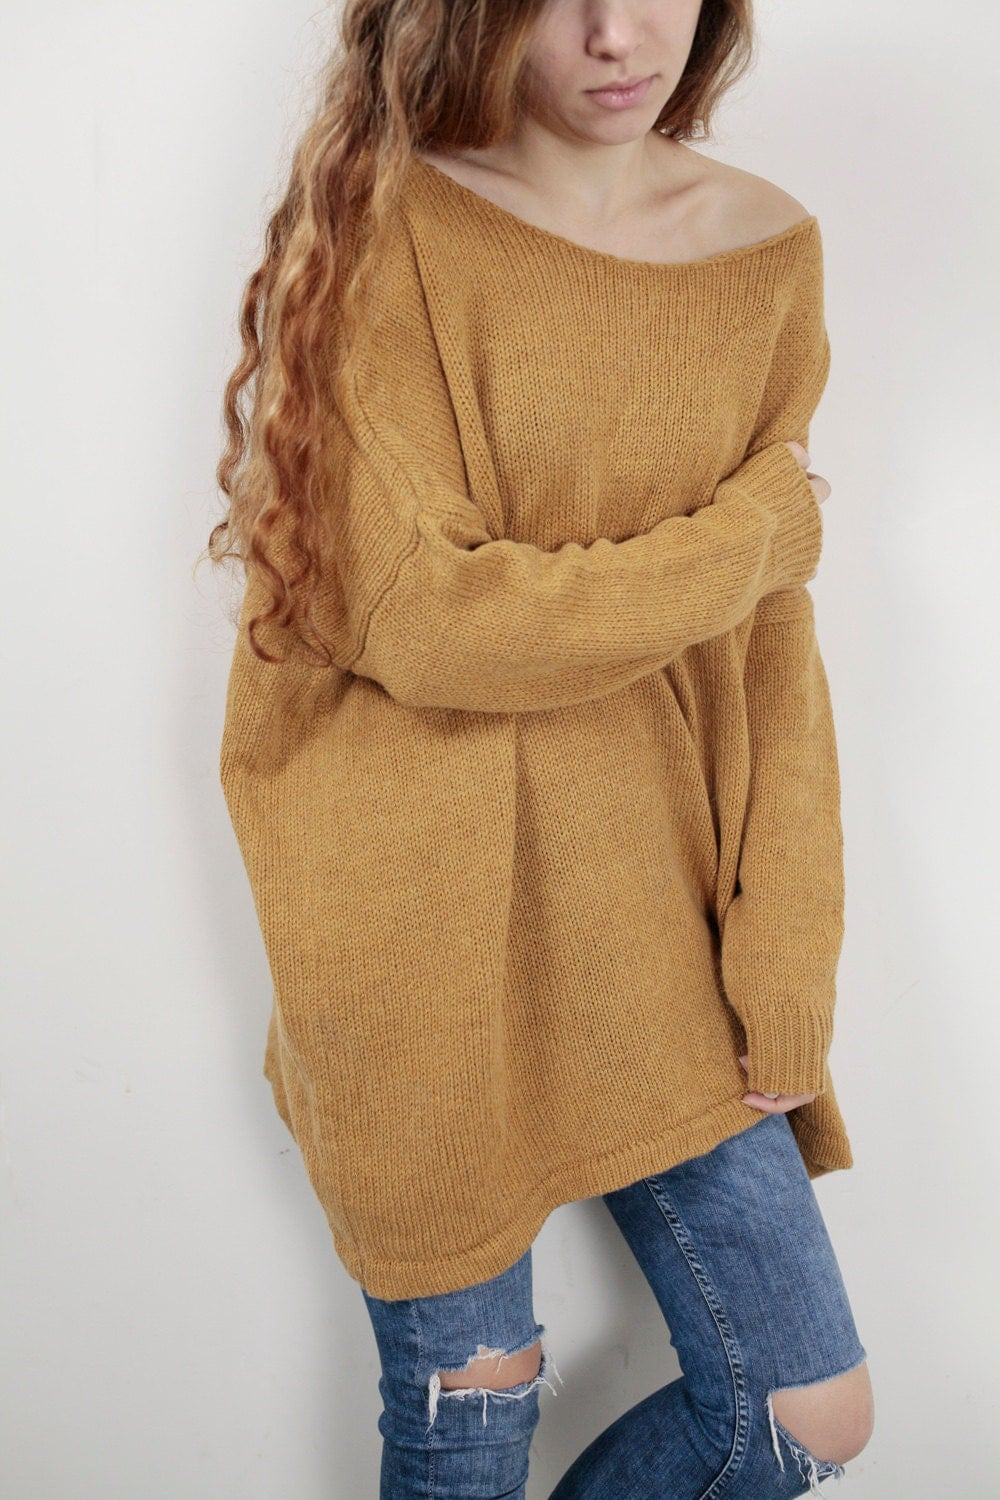 OVERSIZED knit Woman sweater Mustard pullover wool sweater